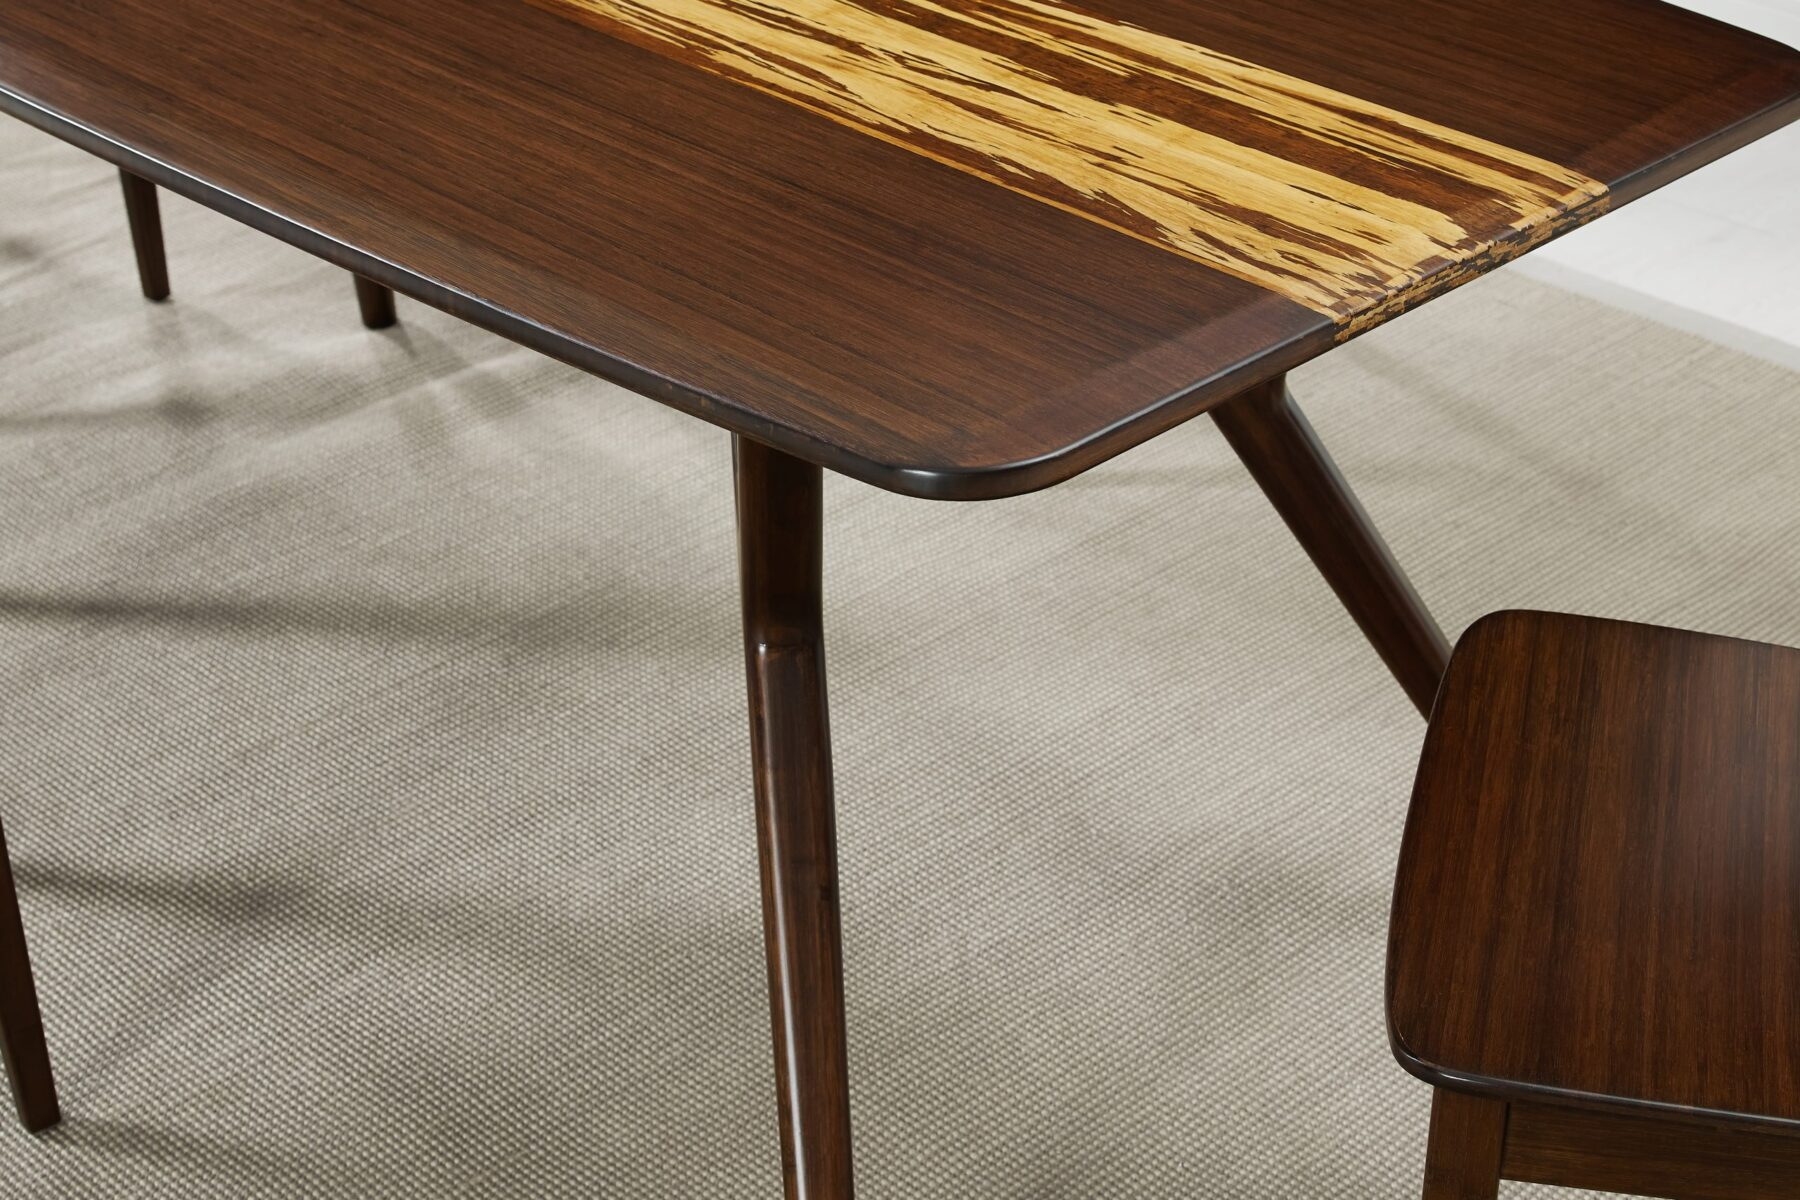 GA0008SA Greenington Azara Dining Table Edge Detail